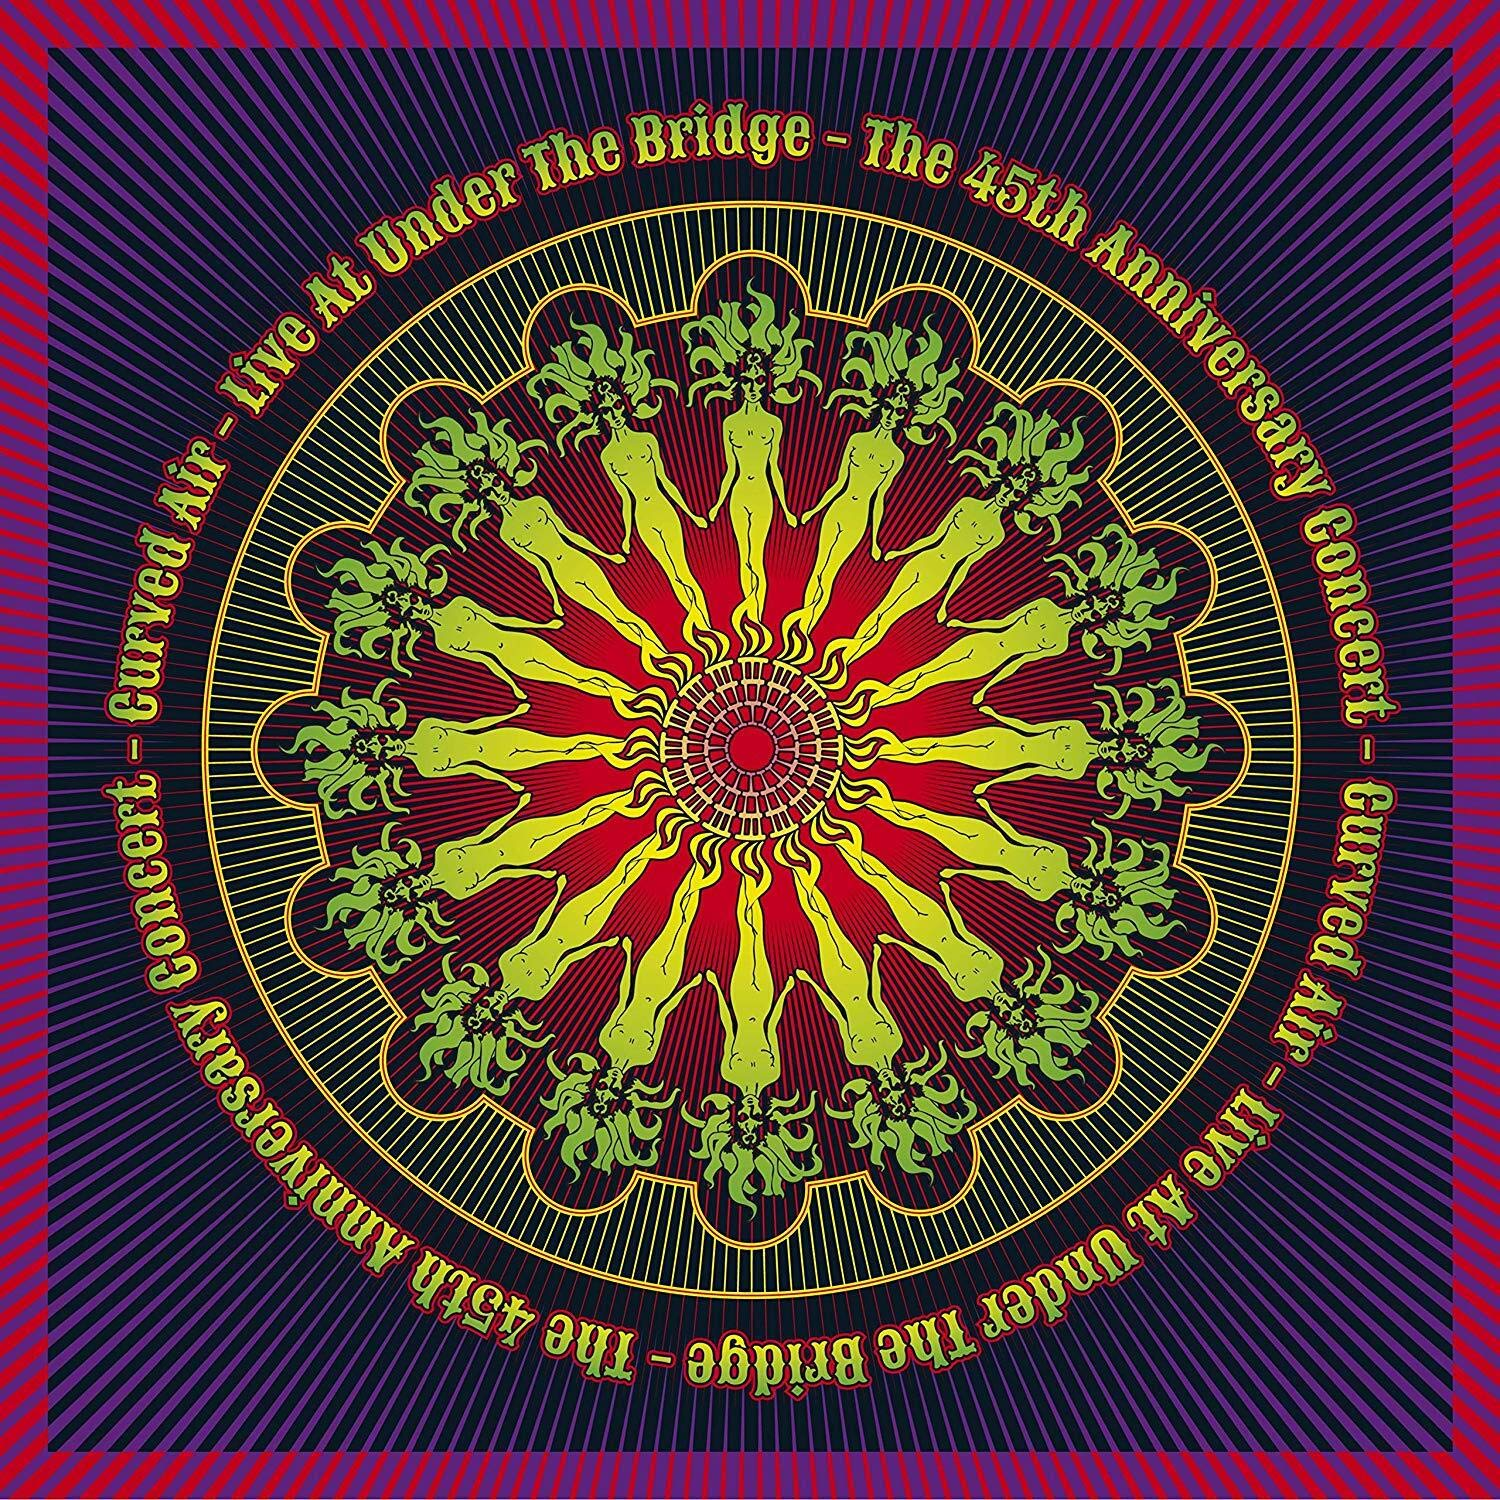 Curved Air — Live at Under the Bridge - The 45th Anniversary Concert